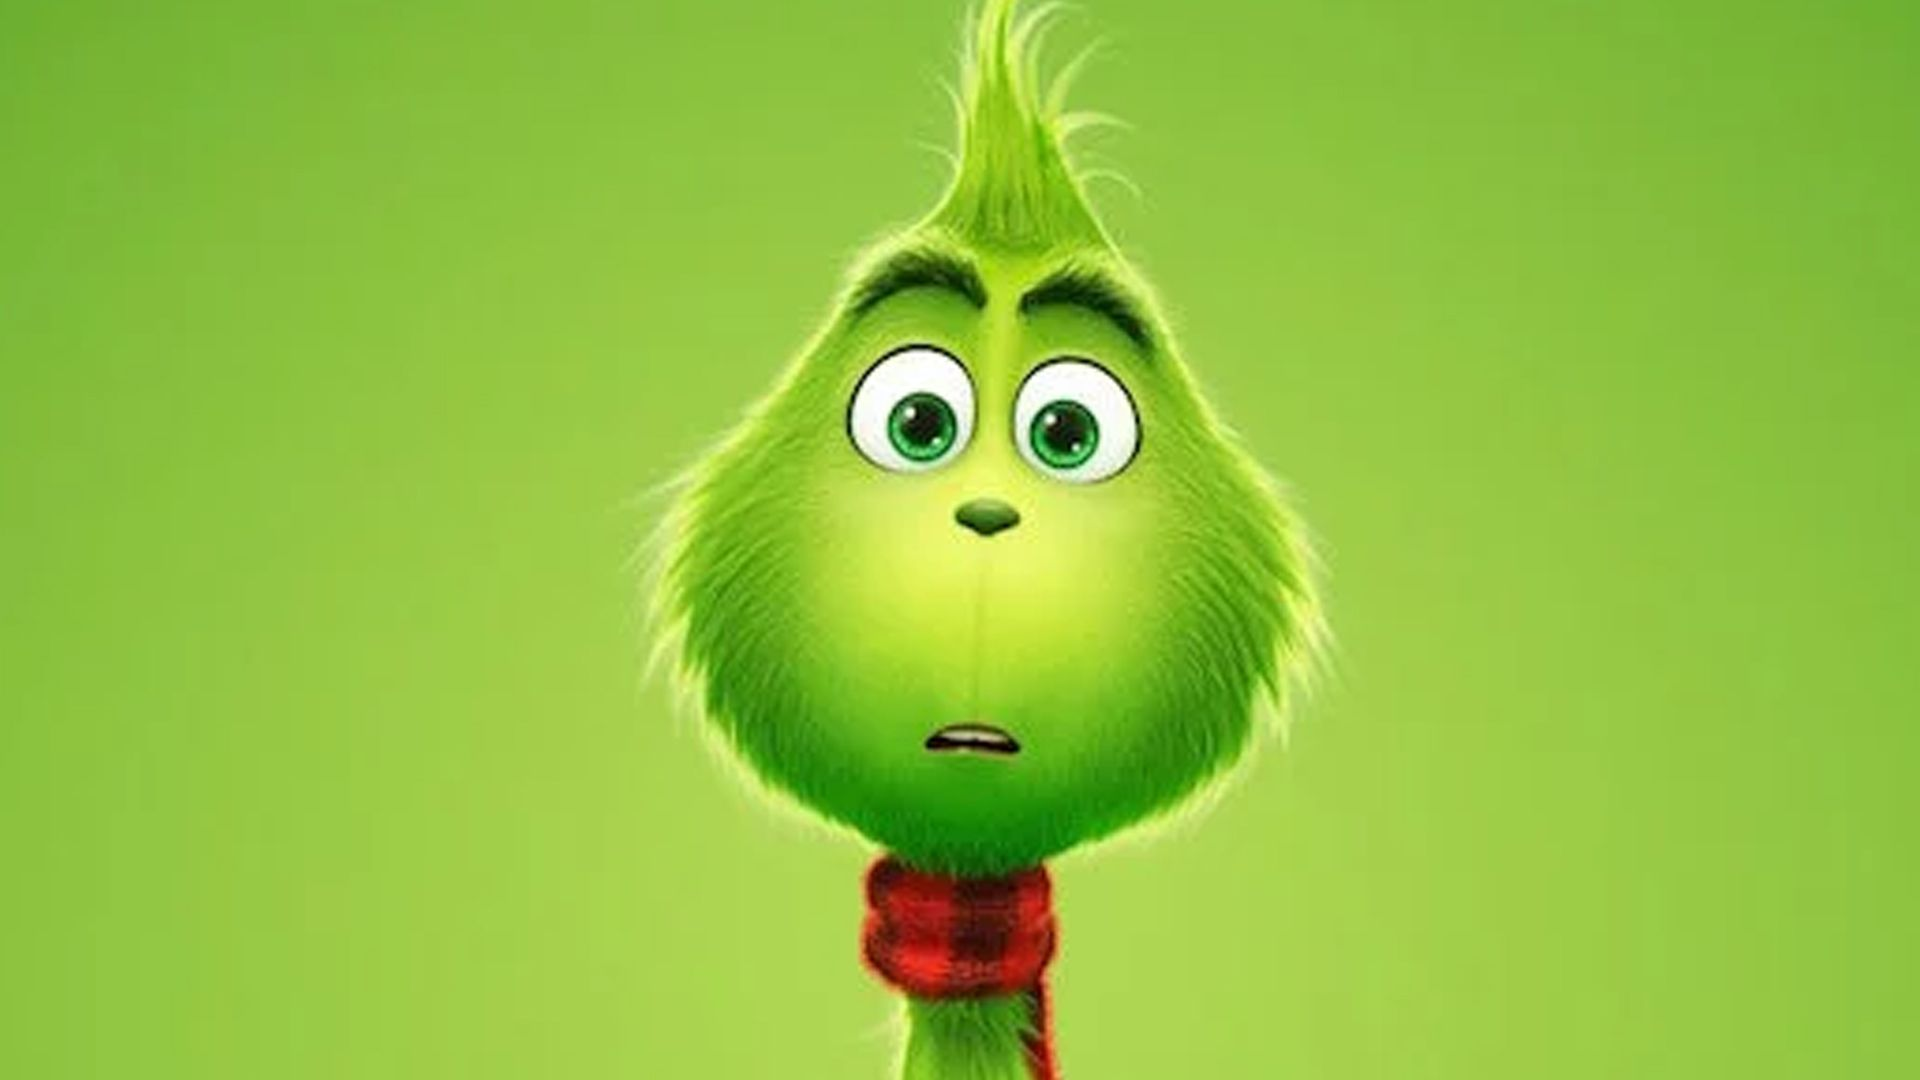 The Grinch 2018 Wallpapers   Top The Grinch 2018 Backgrounds 1920x1080